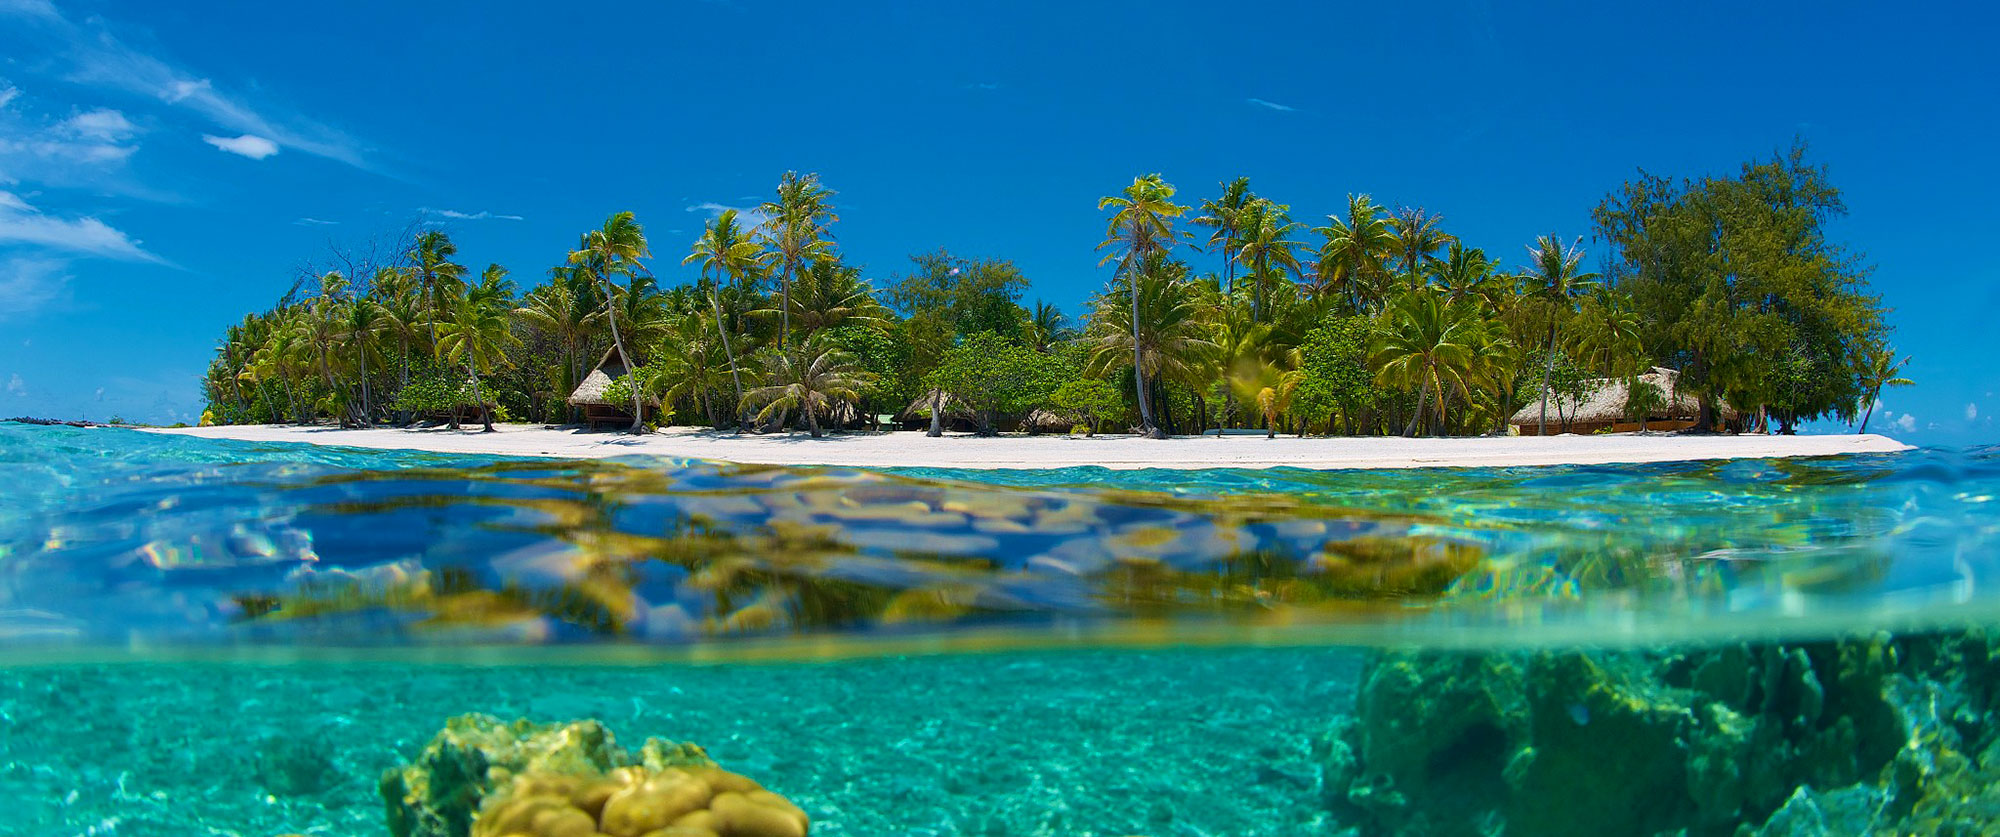 Exotic Honeymoon Destinations All Inclusive: Islands, Beaches & Reefs